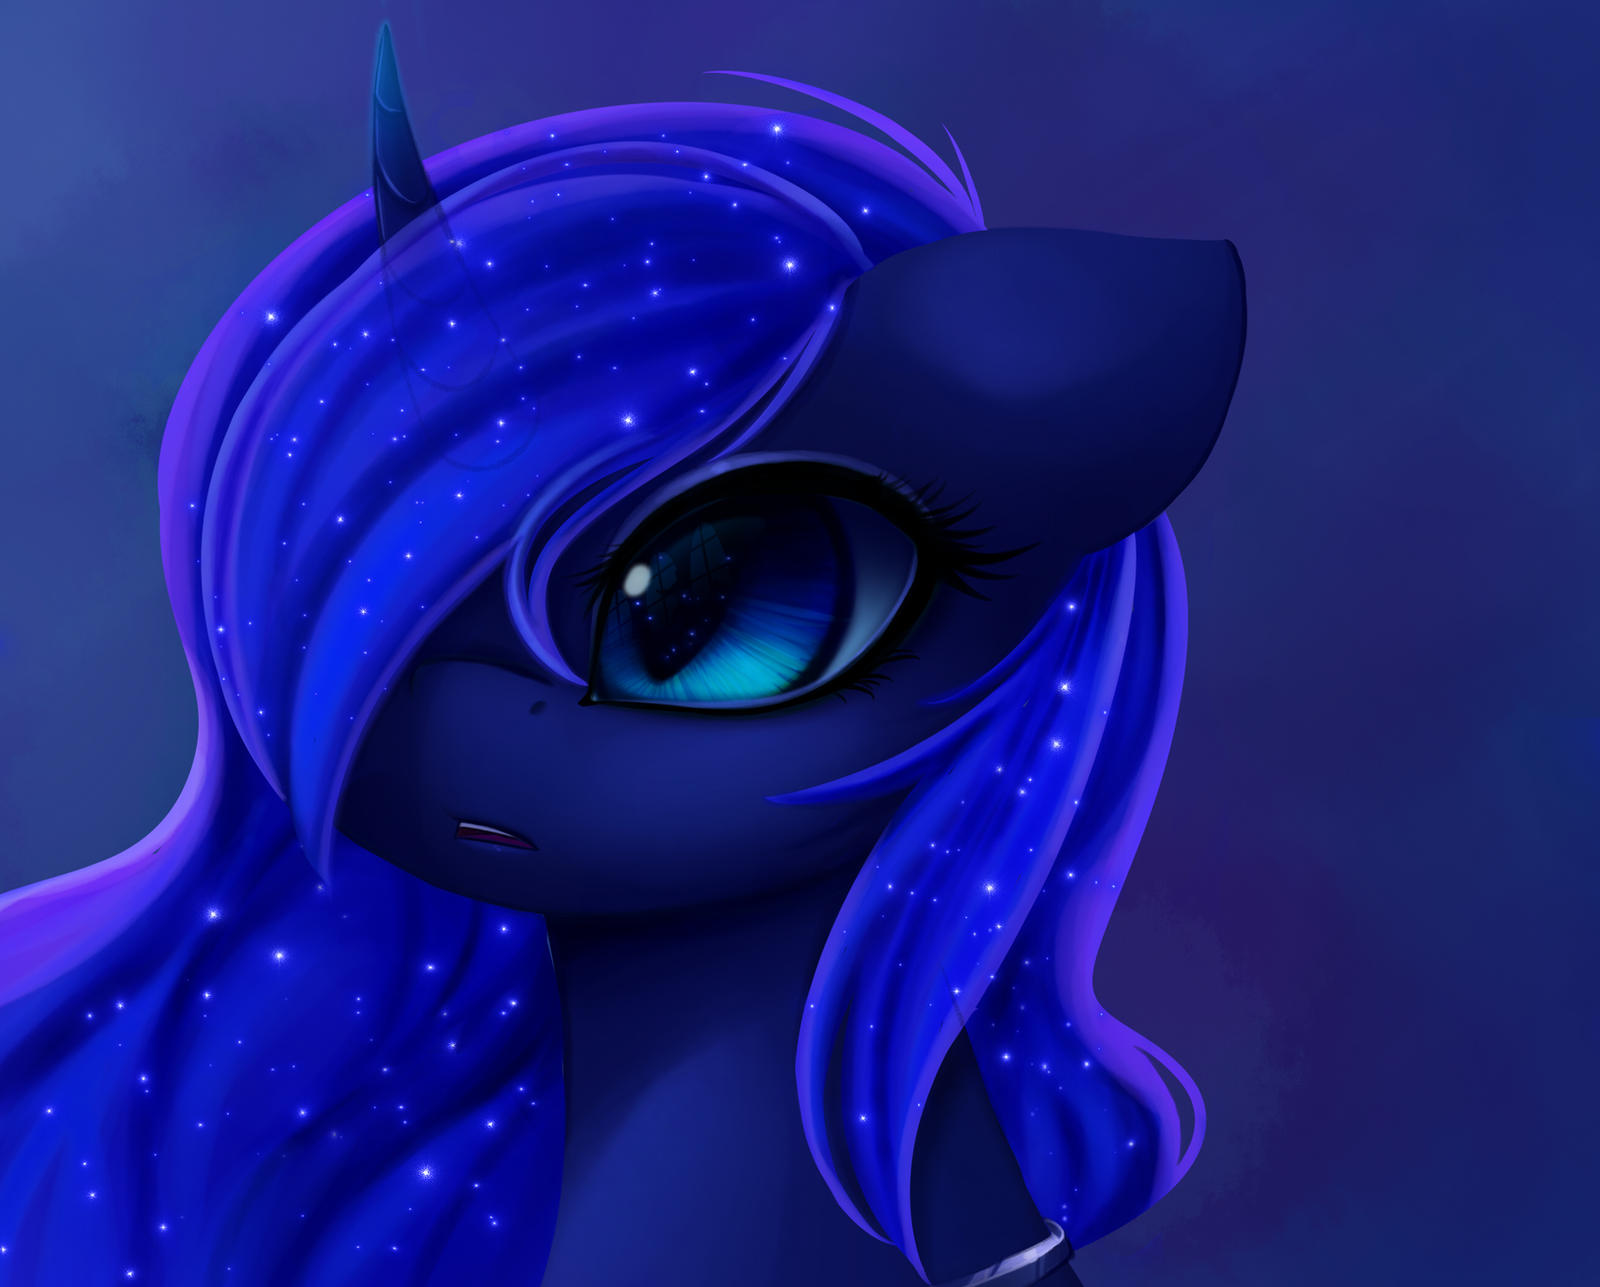 little_star_by_magnaluna-d9s8s5b.jpg